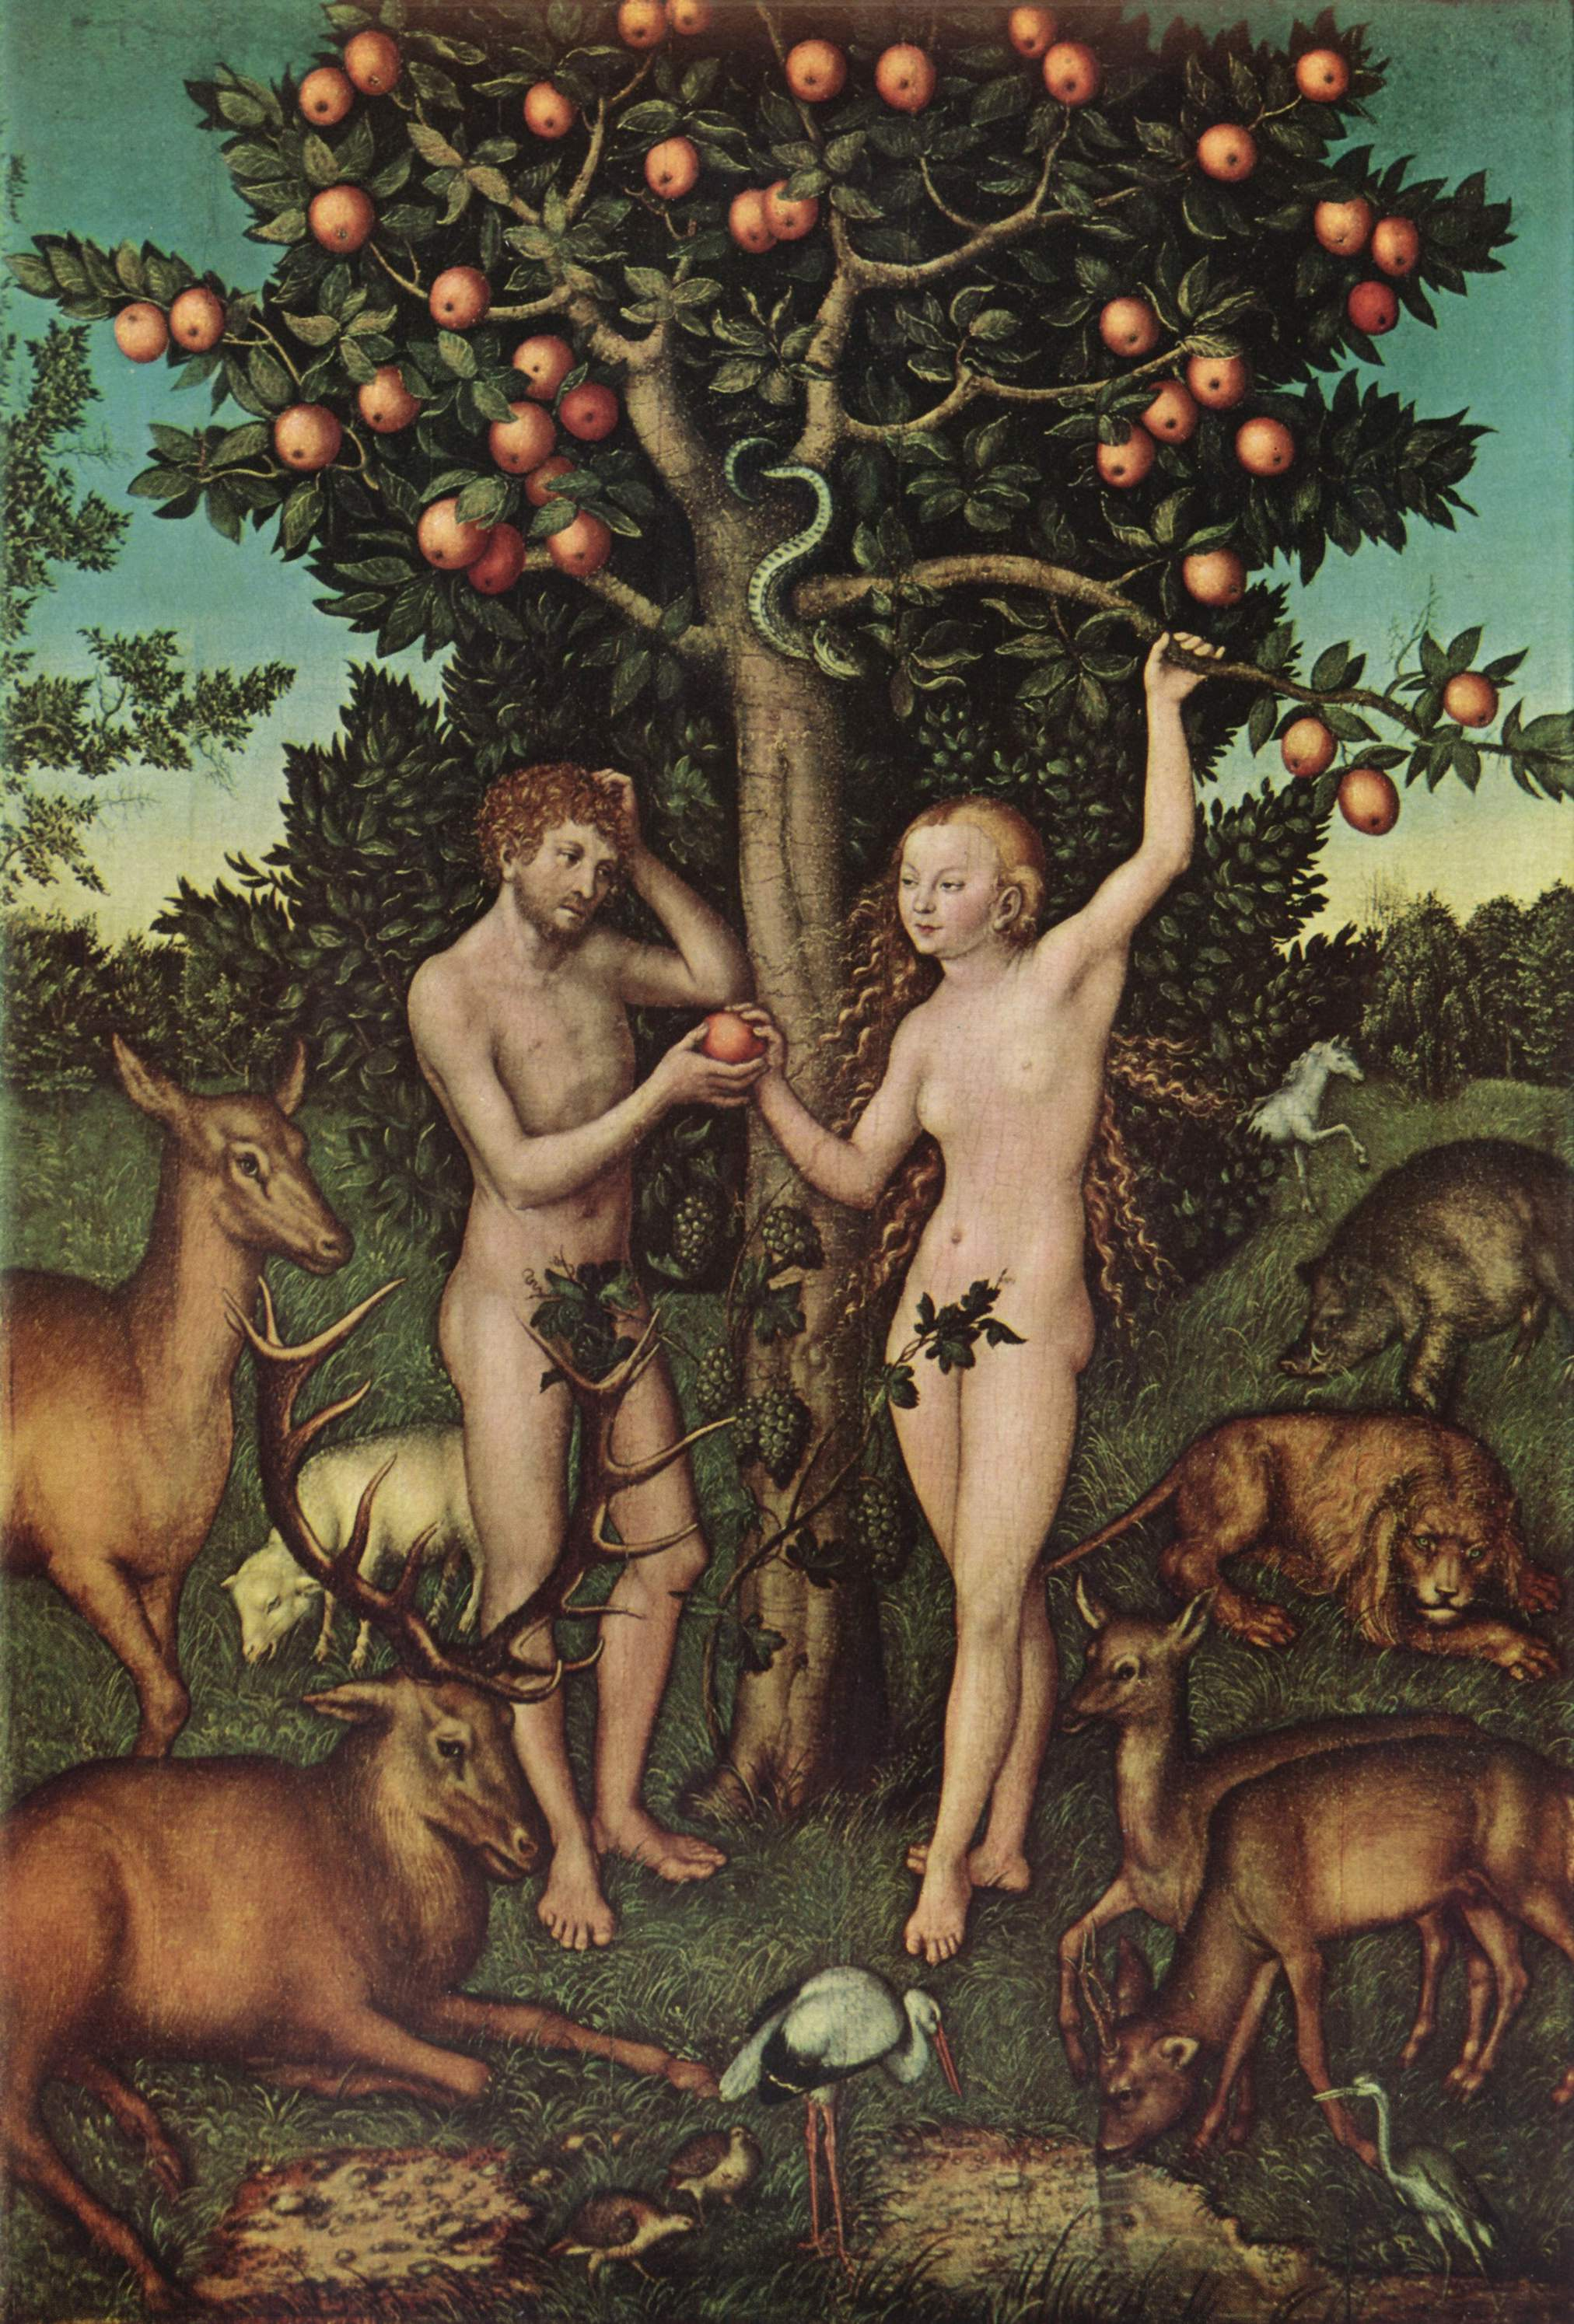 http://upload.wikimedia.org/wikipedia/commons/4/45/Lucas_Cranach_d._%C3%84._001.jpg